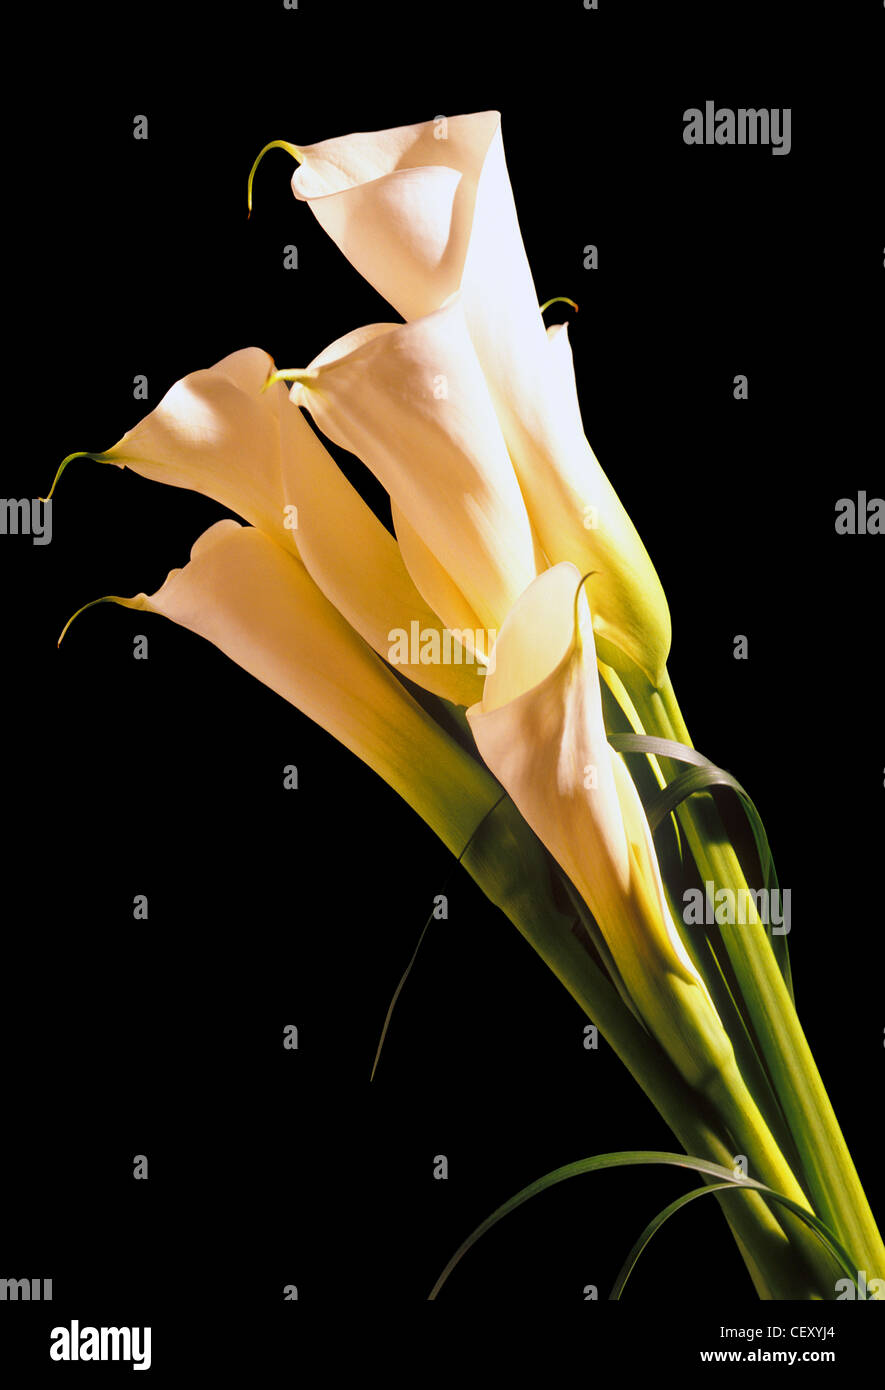 Tubular lily stock photos tubular lily stock images alamy a still life shot of a lily flower on white background stock image izmirmasajfo